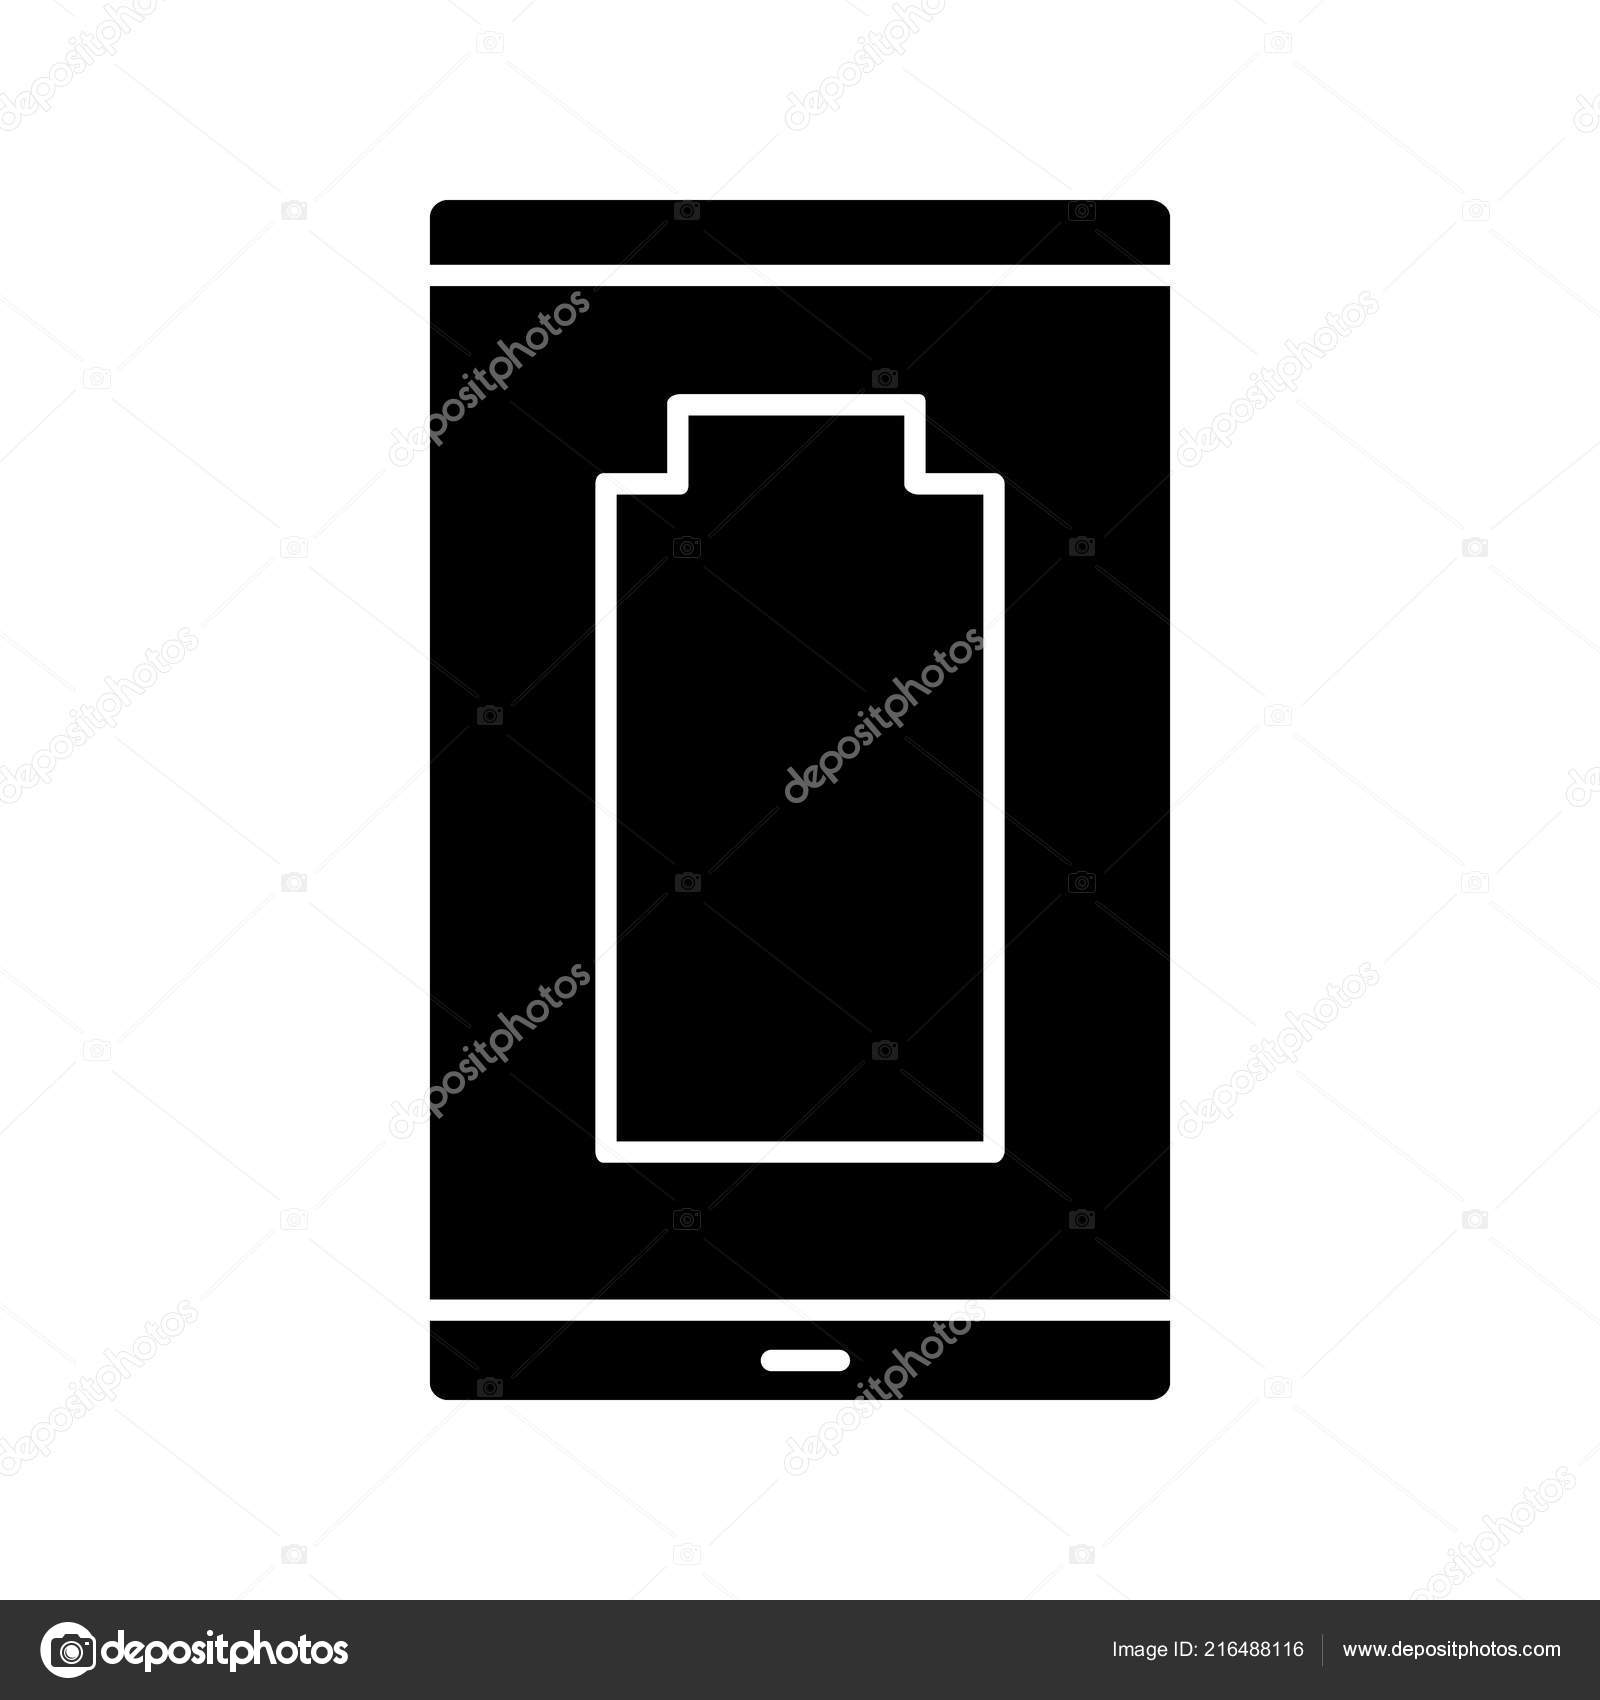 Discharged Battery Level Indicator Smartphone Glyph Icon Stock Vector